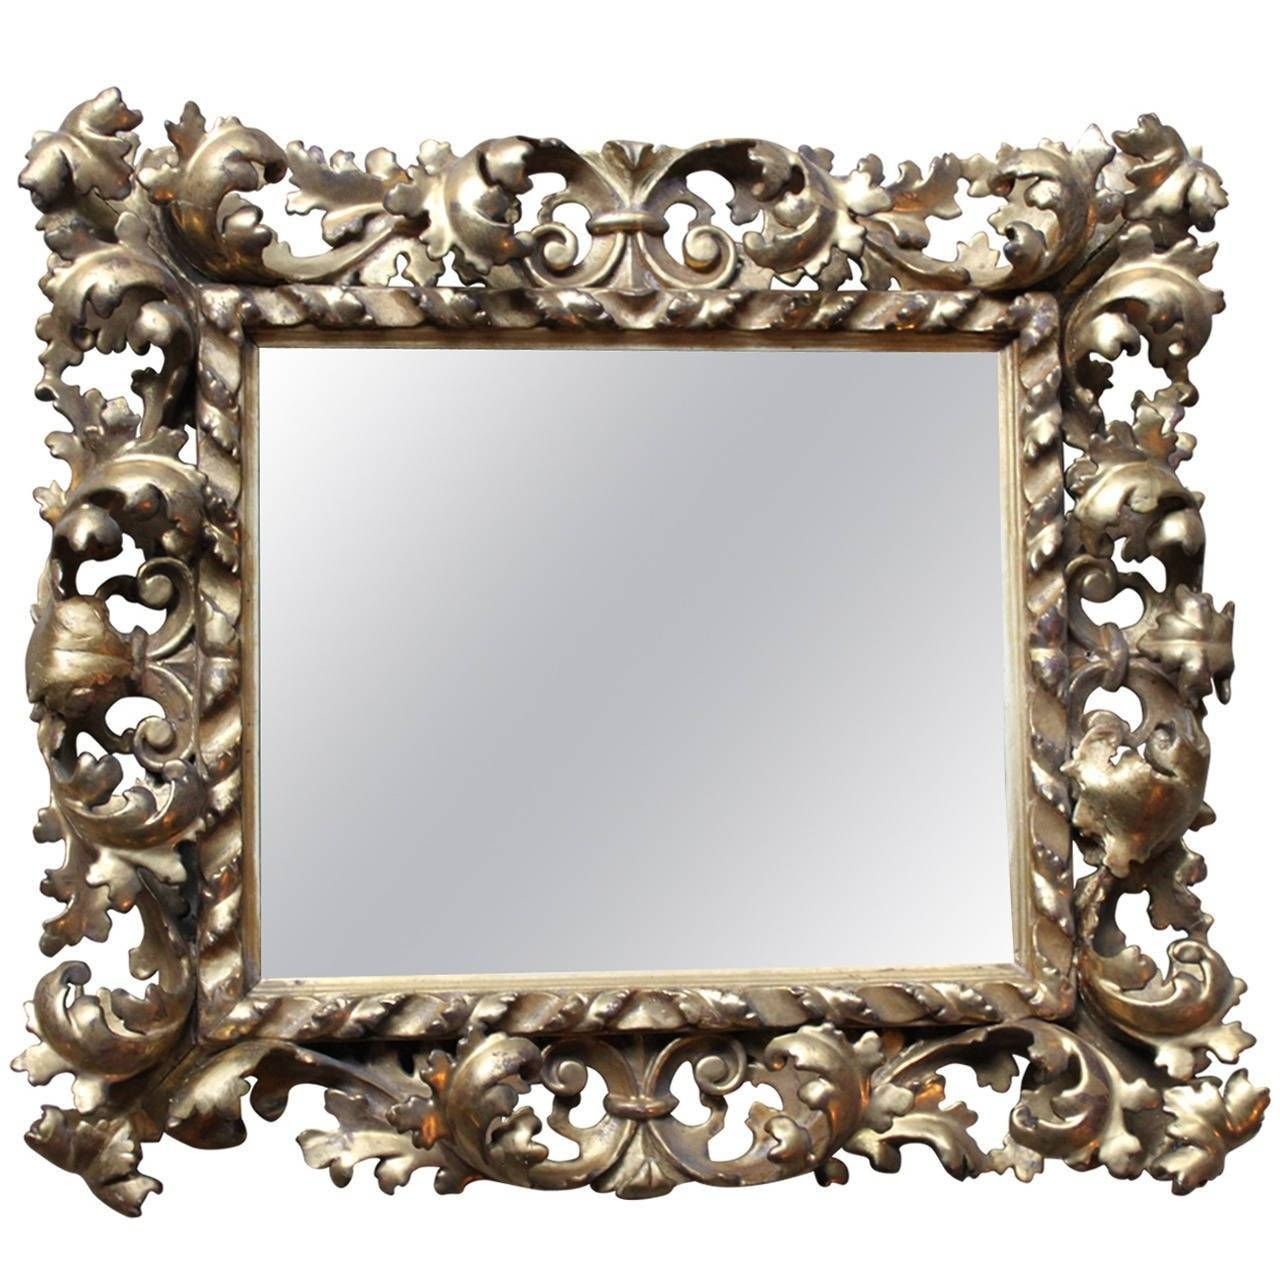 Italian Rococo Mirror Gold Giltwood And Open Scrollwork, 19Th Intended For Gold Rococo Mirrors (View 18 of 25)